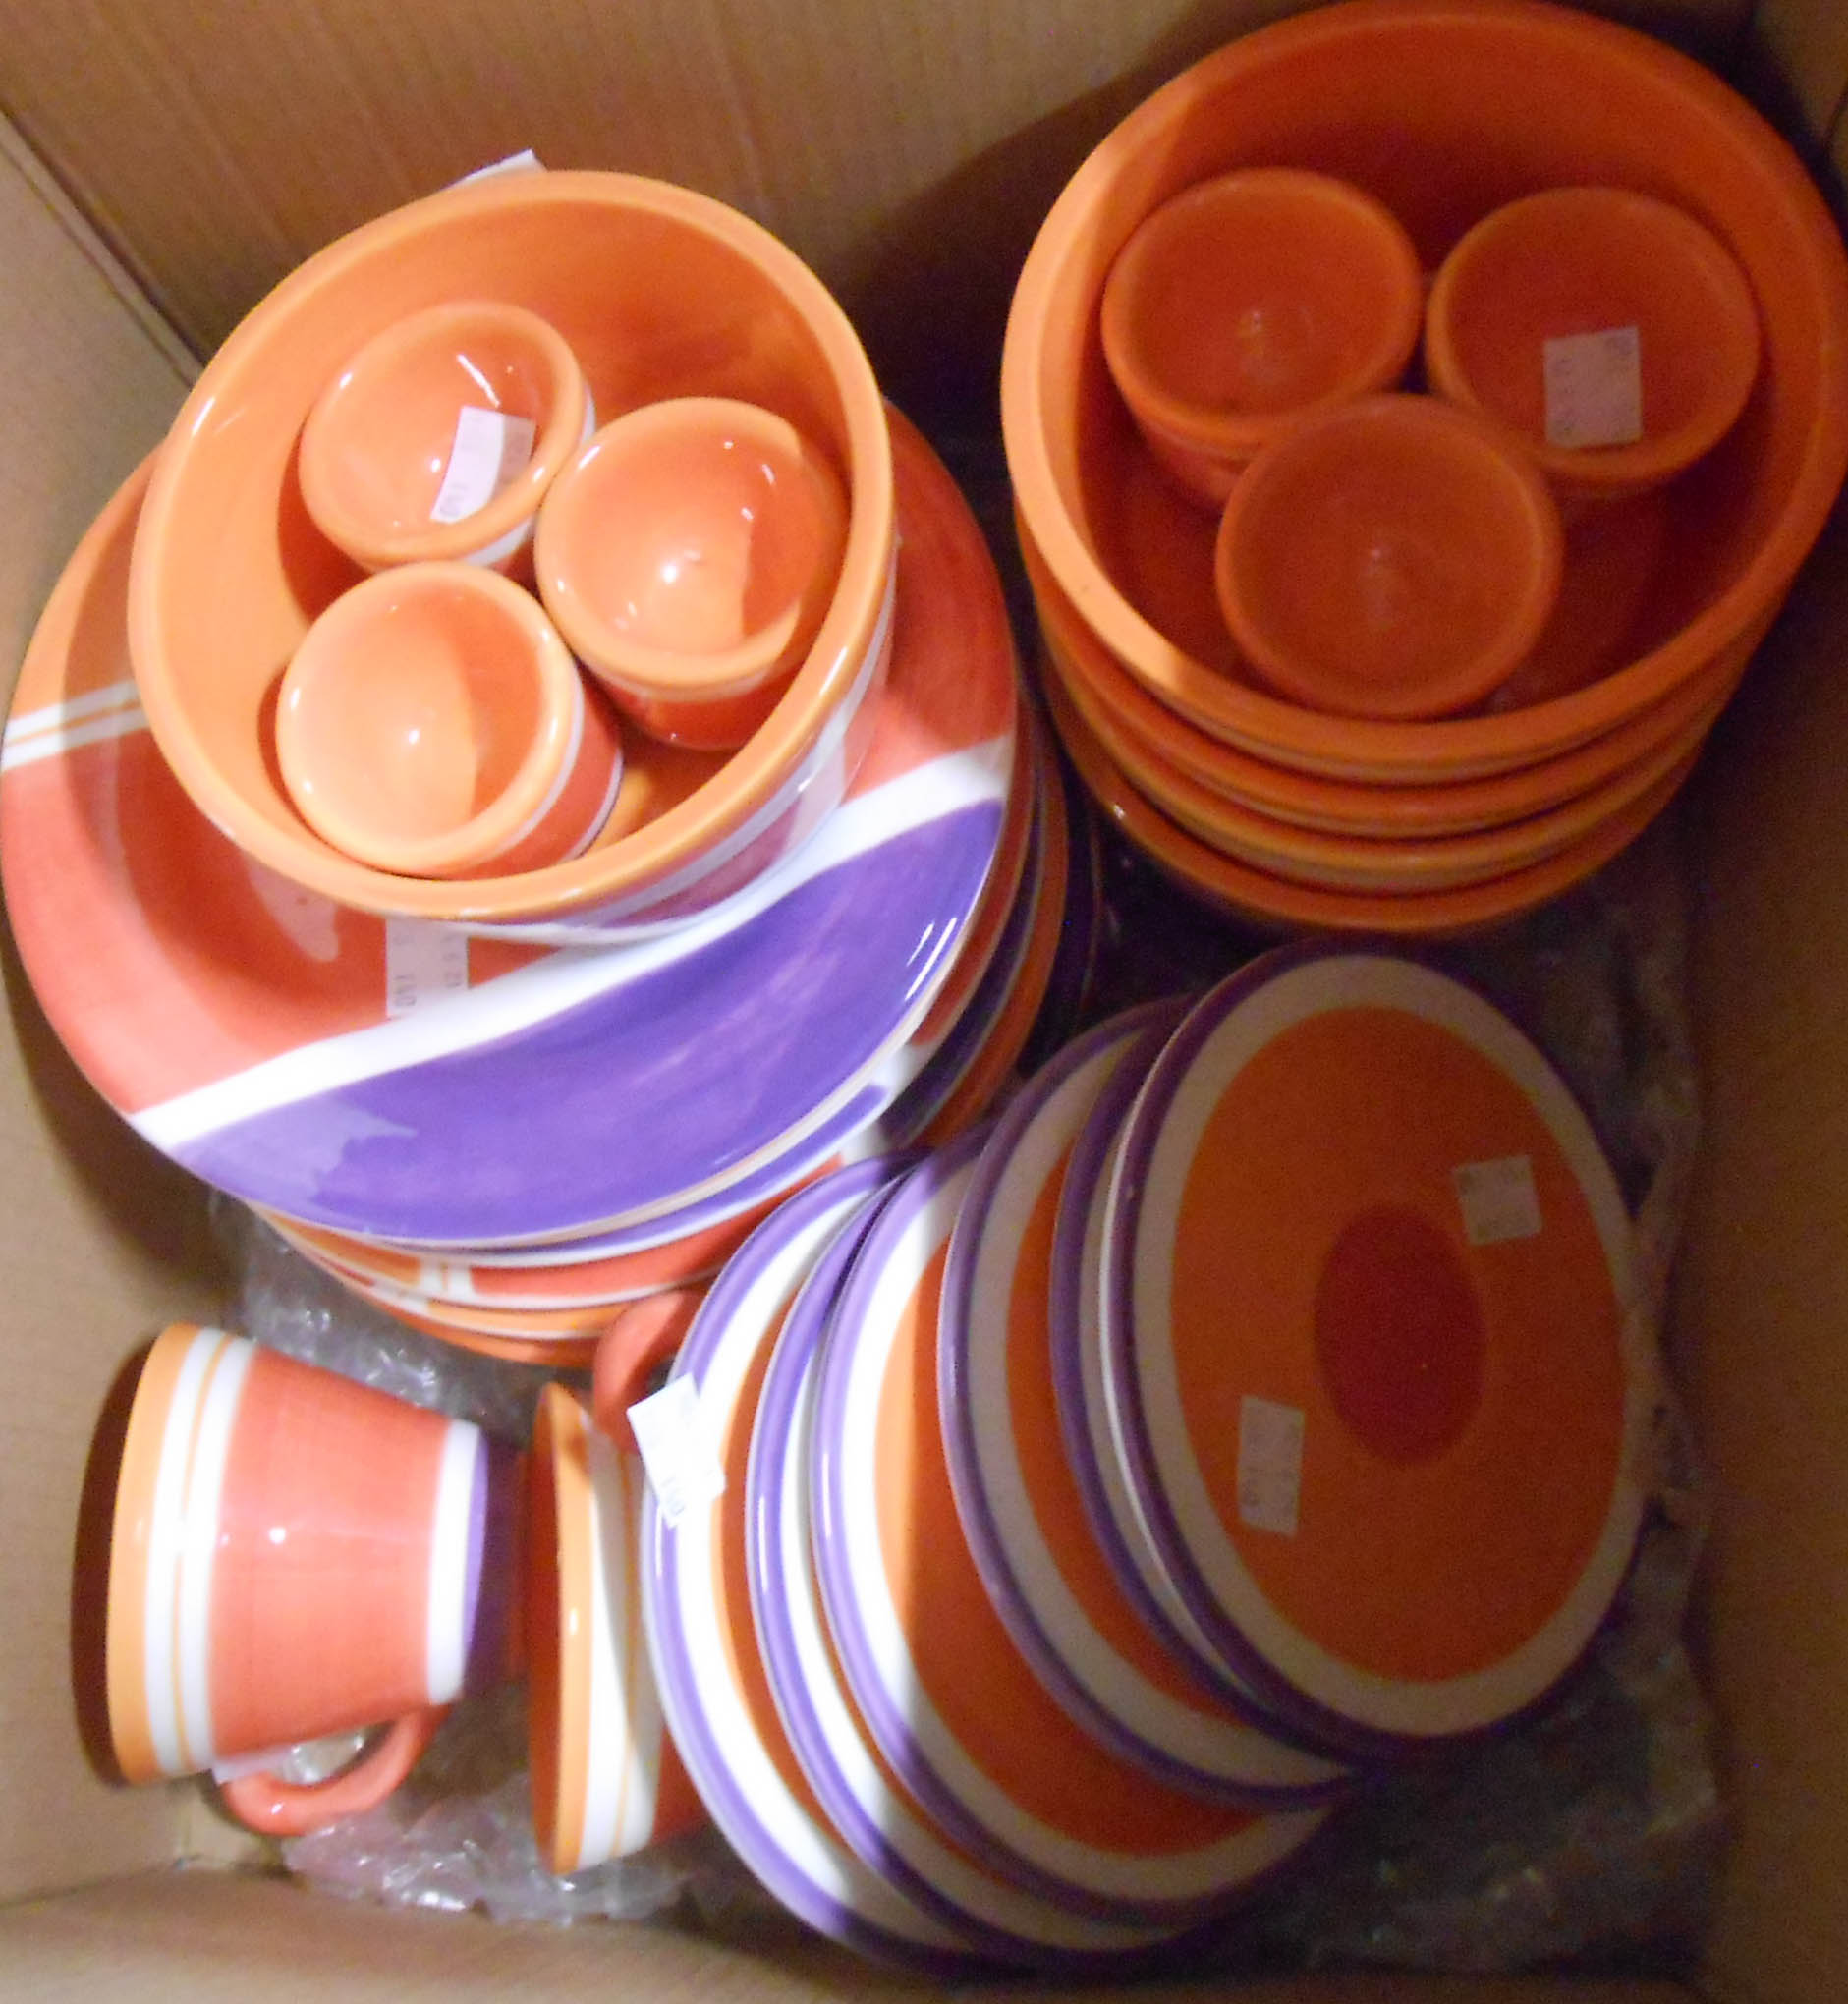 Two boxes containing assorted Habitat tableware